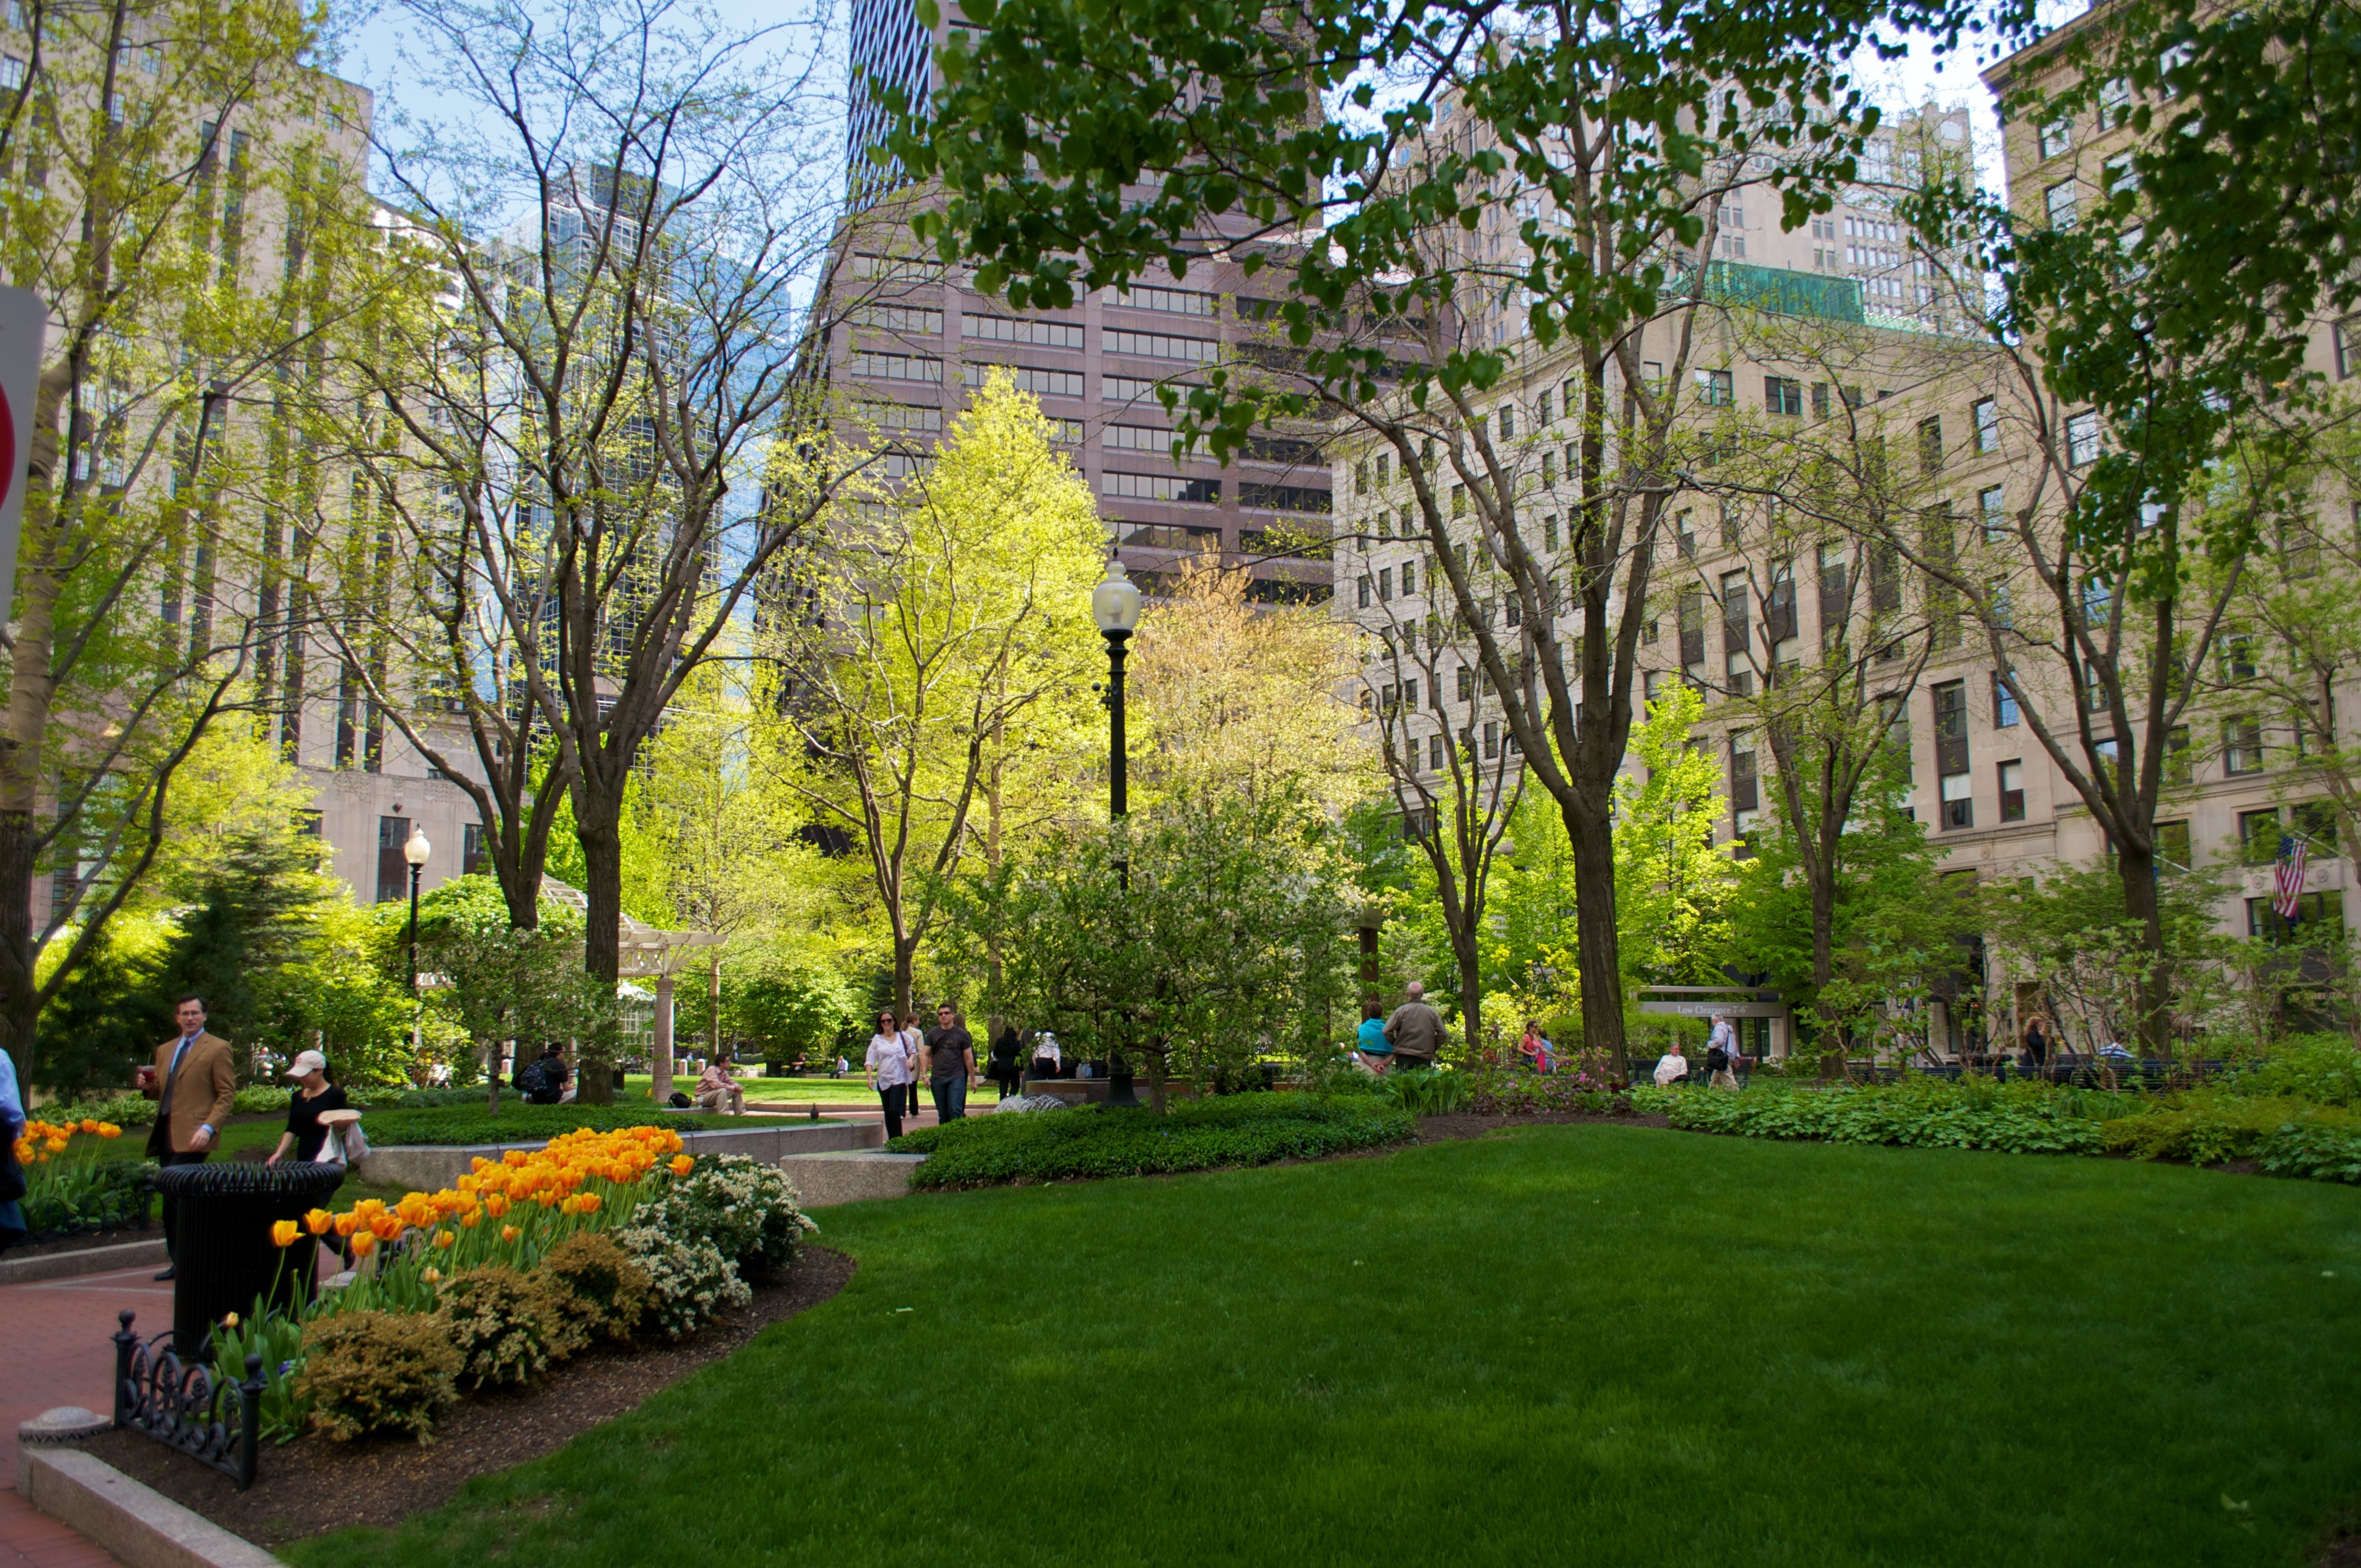 2013 Great Places in America: Public Spaces – Norman B. Leventhal Park, Boston, Massachusetts • The park features a wide variety of flora, including a rare specimen of tree from Harvard's Arnold Arboretum. Photo by Flickr user Jonathan Hinkle (hynkle) (CC BY-NC-SA 2.0). http://www.planning.org/greatplaces